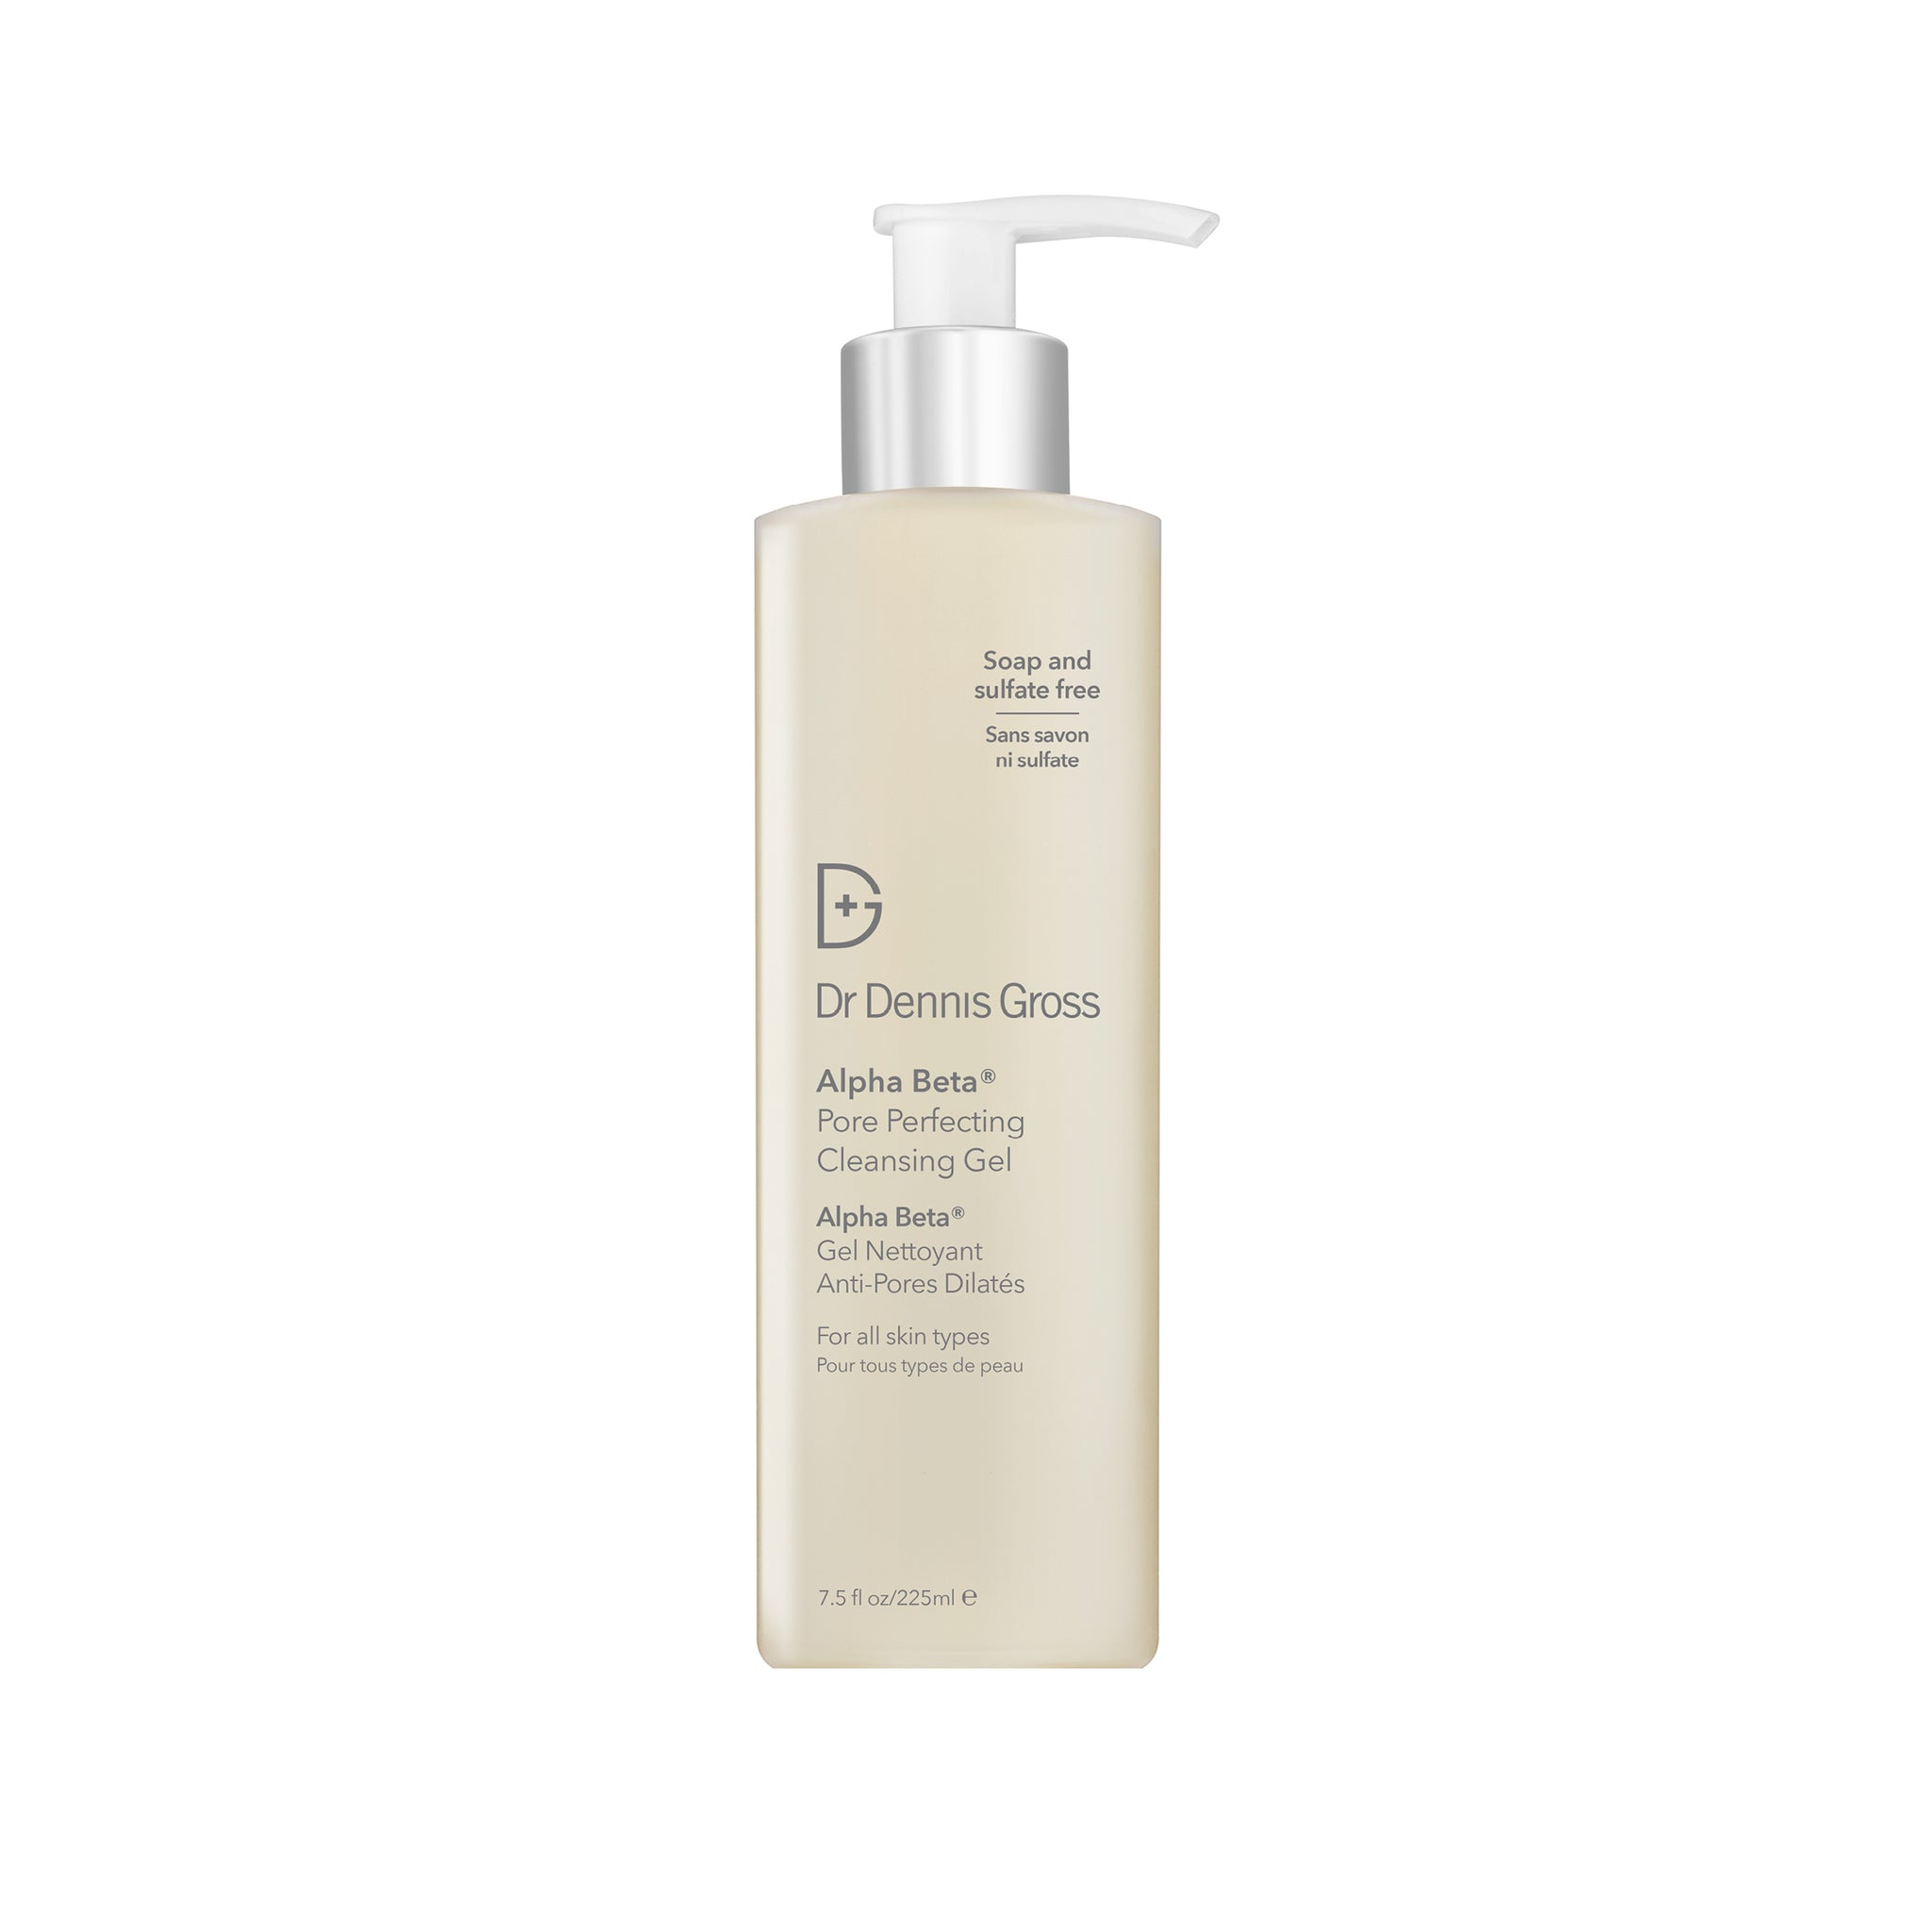 Alpha Beta® Pore Perfecting Cleansing Gel